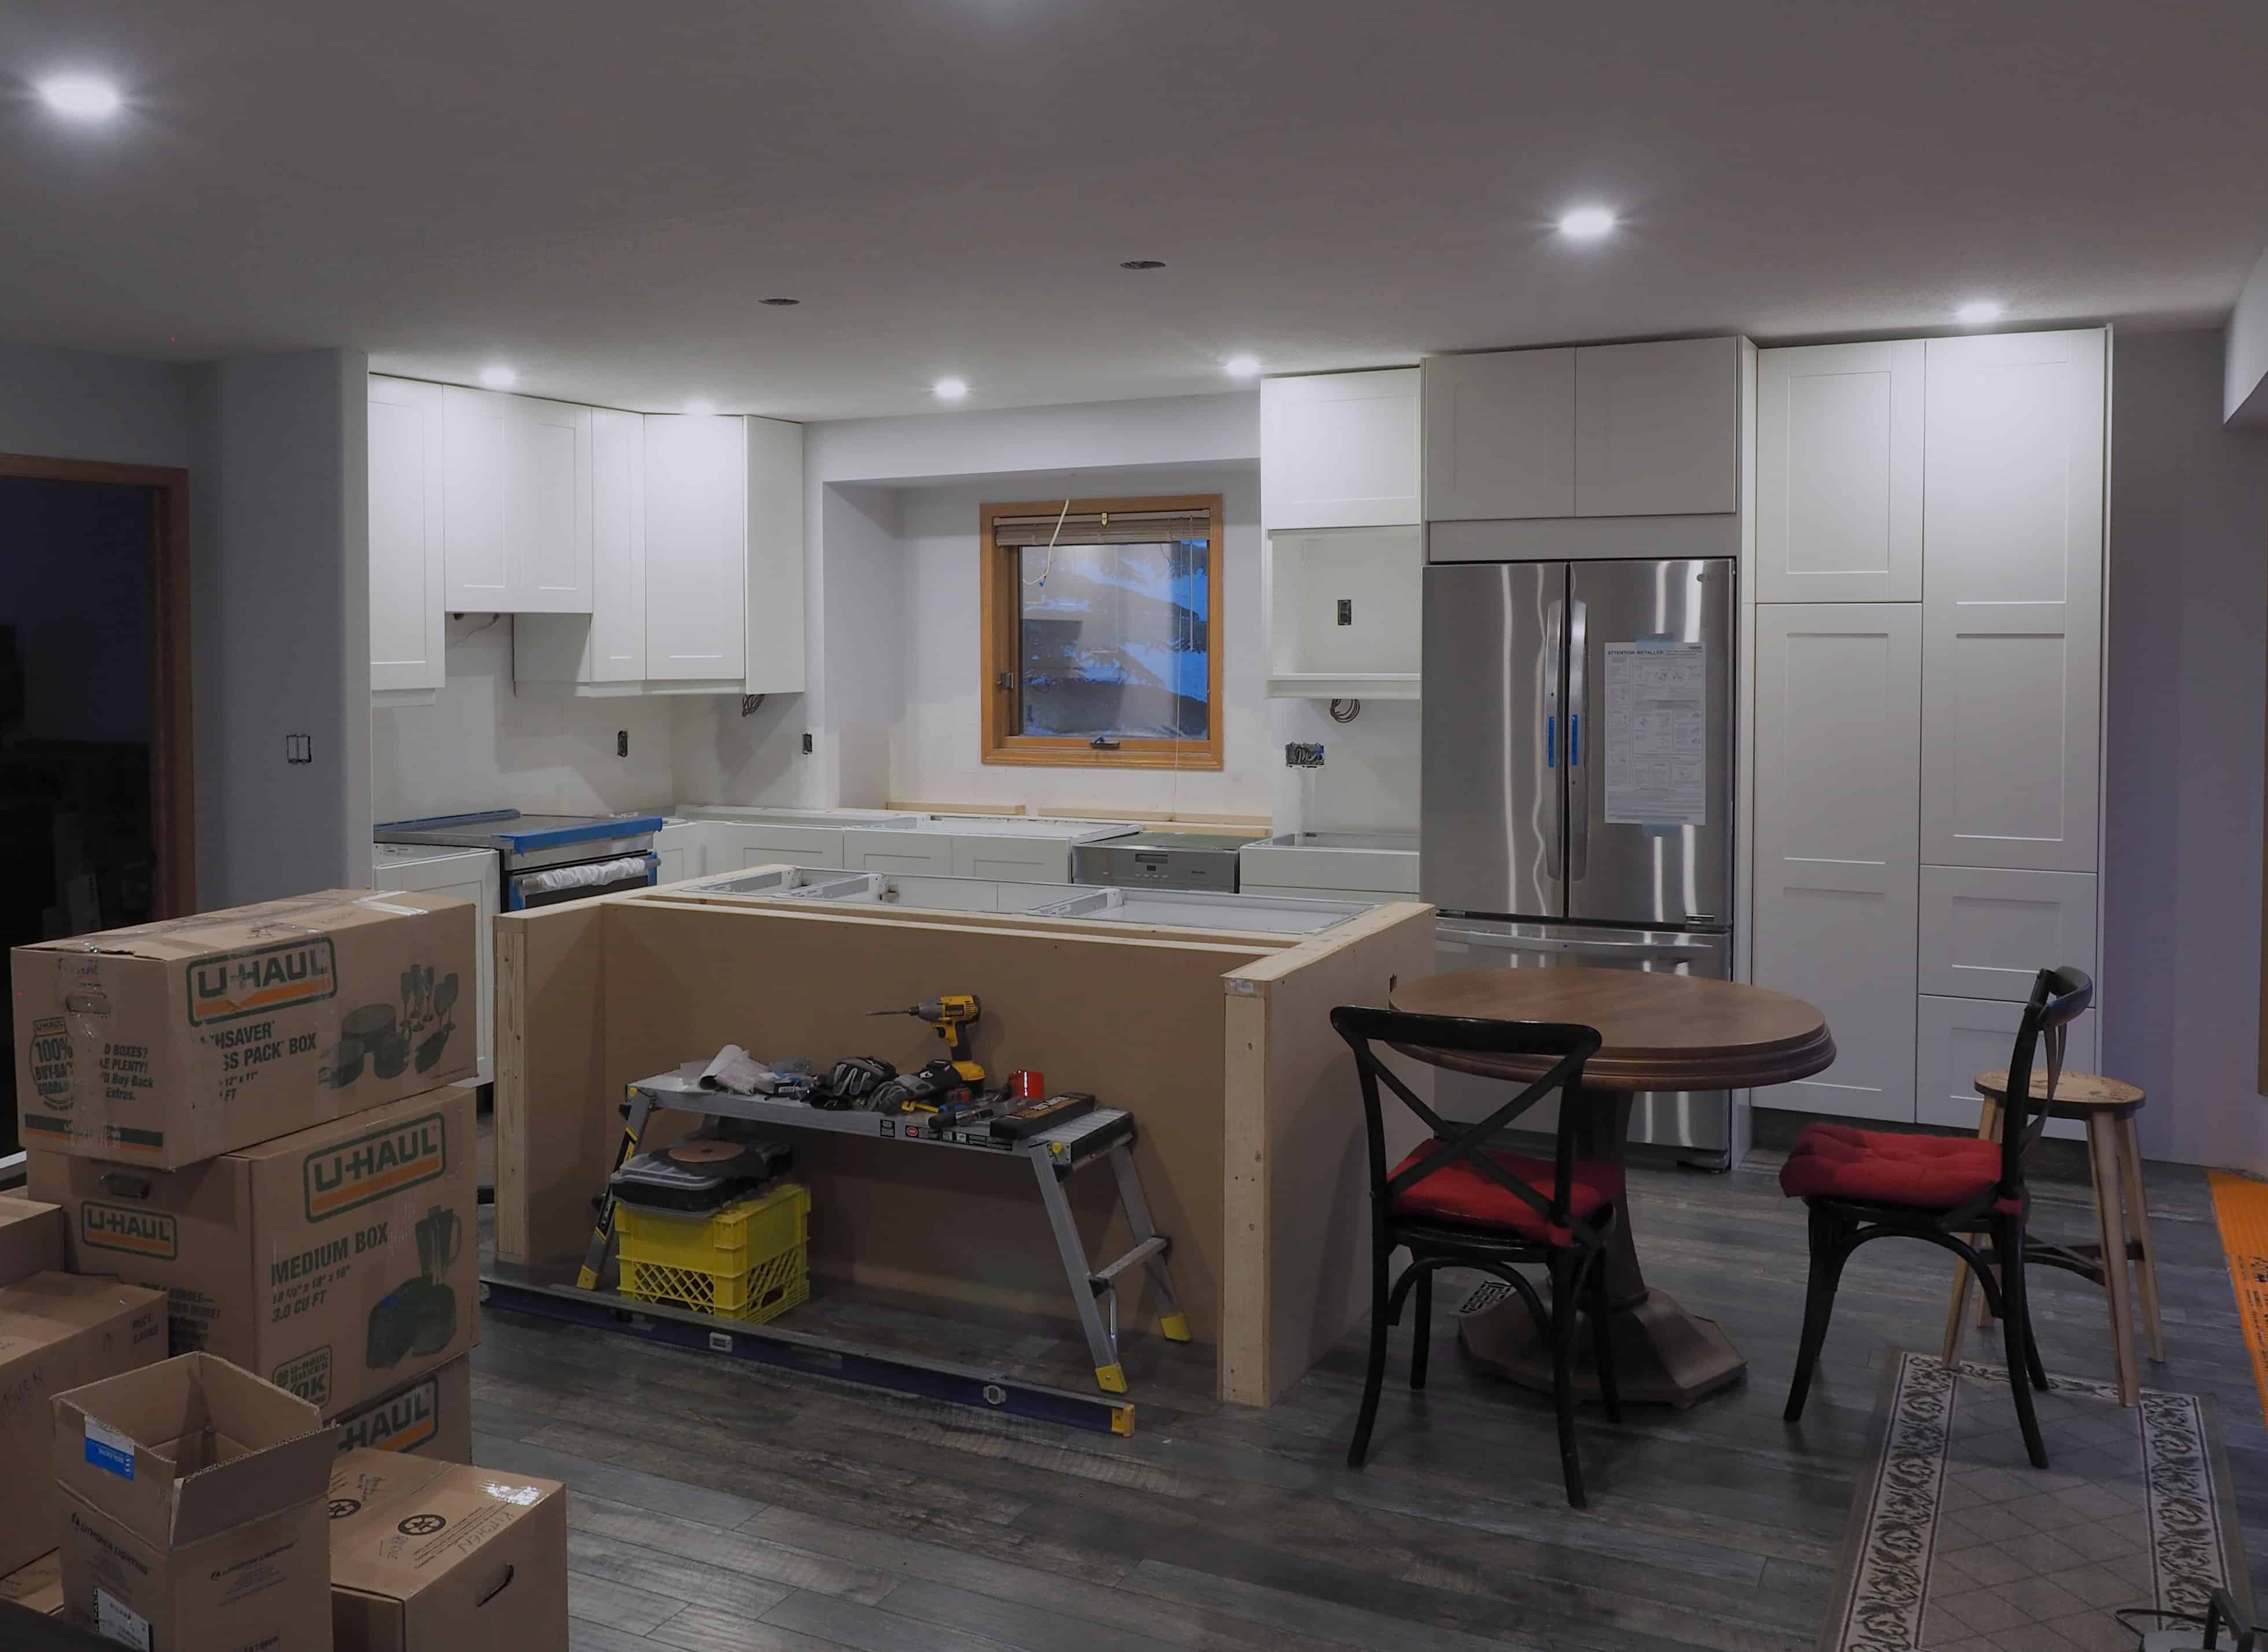 Cliqstudios Kitchen Cabinet Installation Guide Chapter: Kitchen Update- IKEA Cabinet Installation (Chapter #2